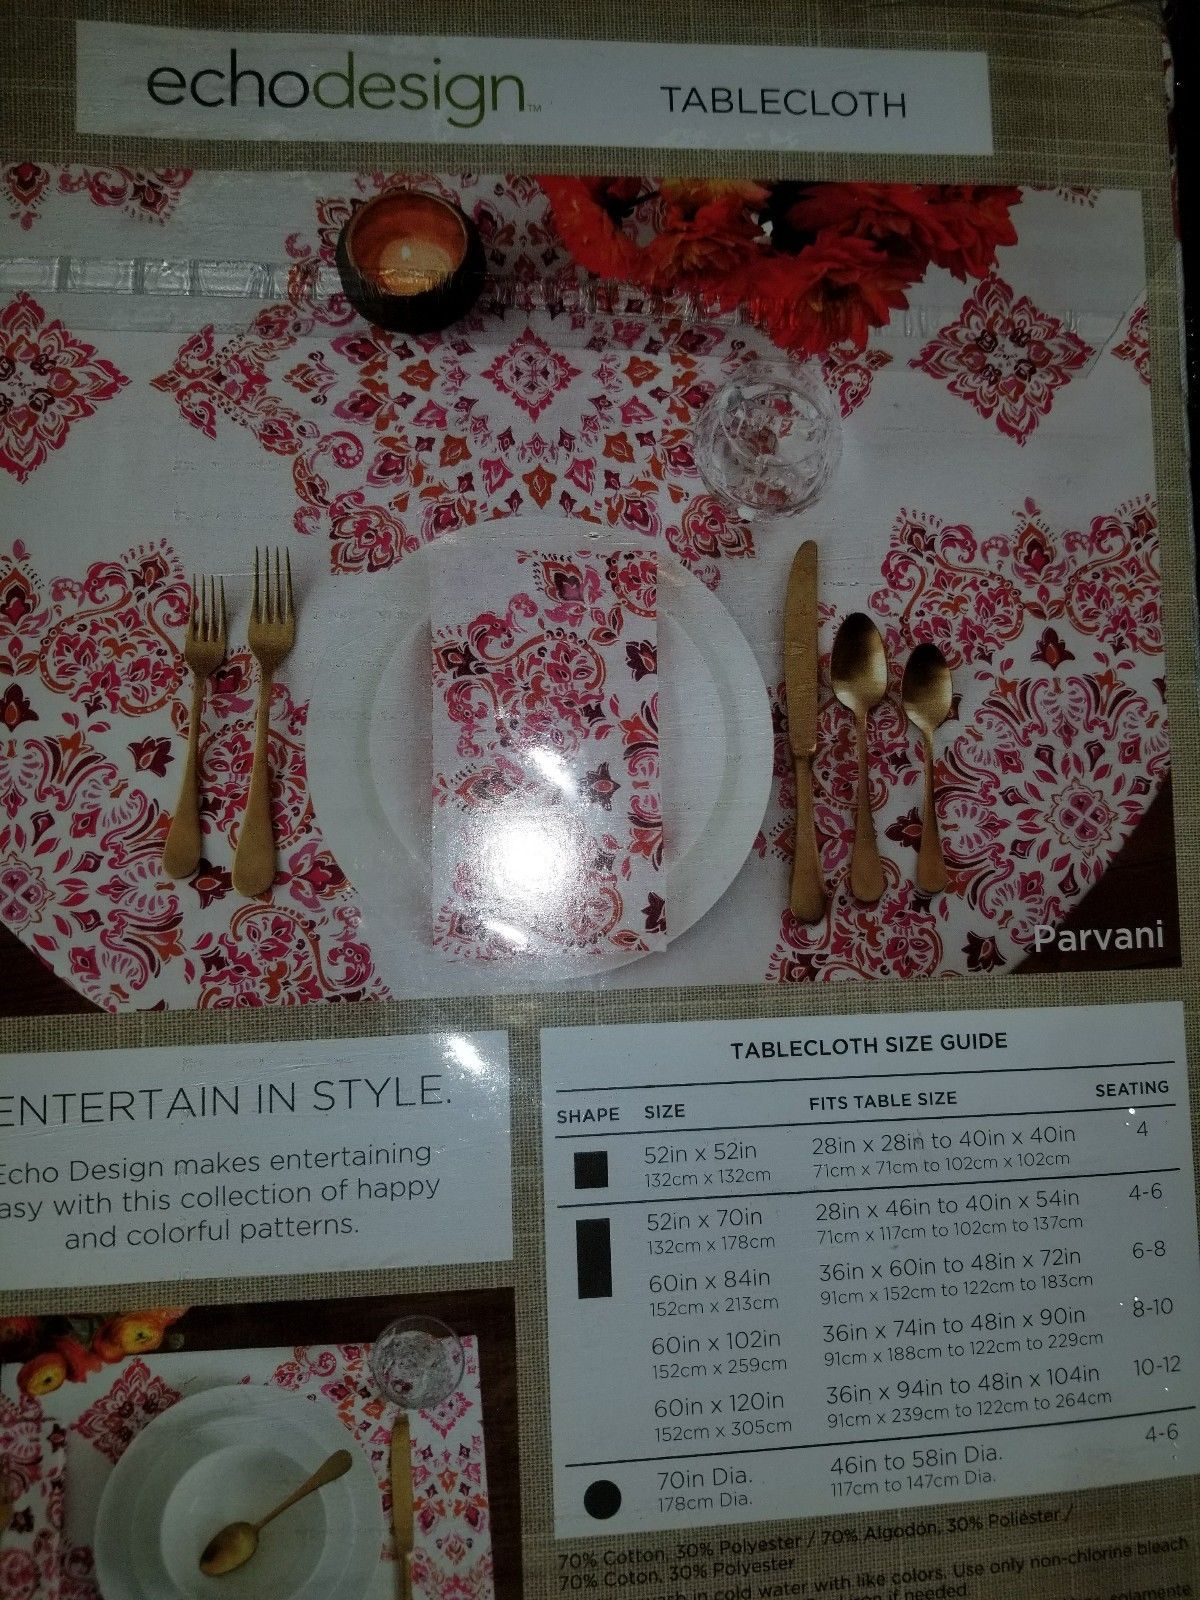 Tablecloth echodesign 52in X 52 in Square NEW